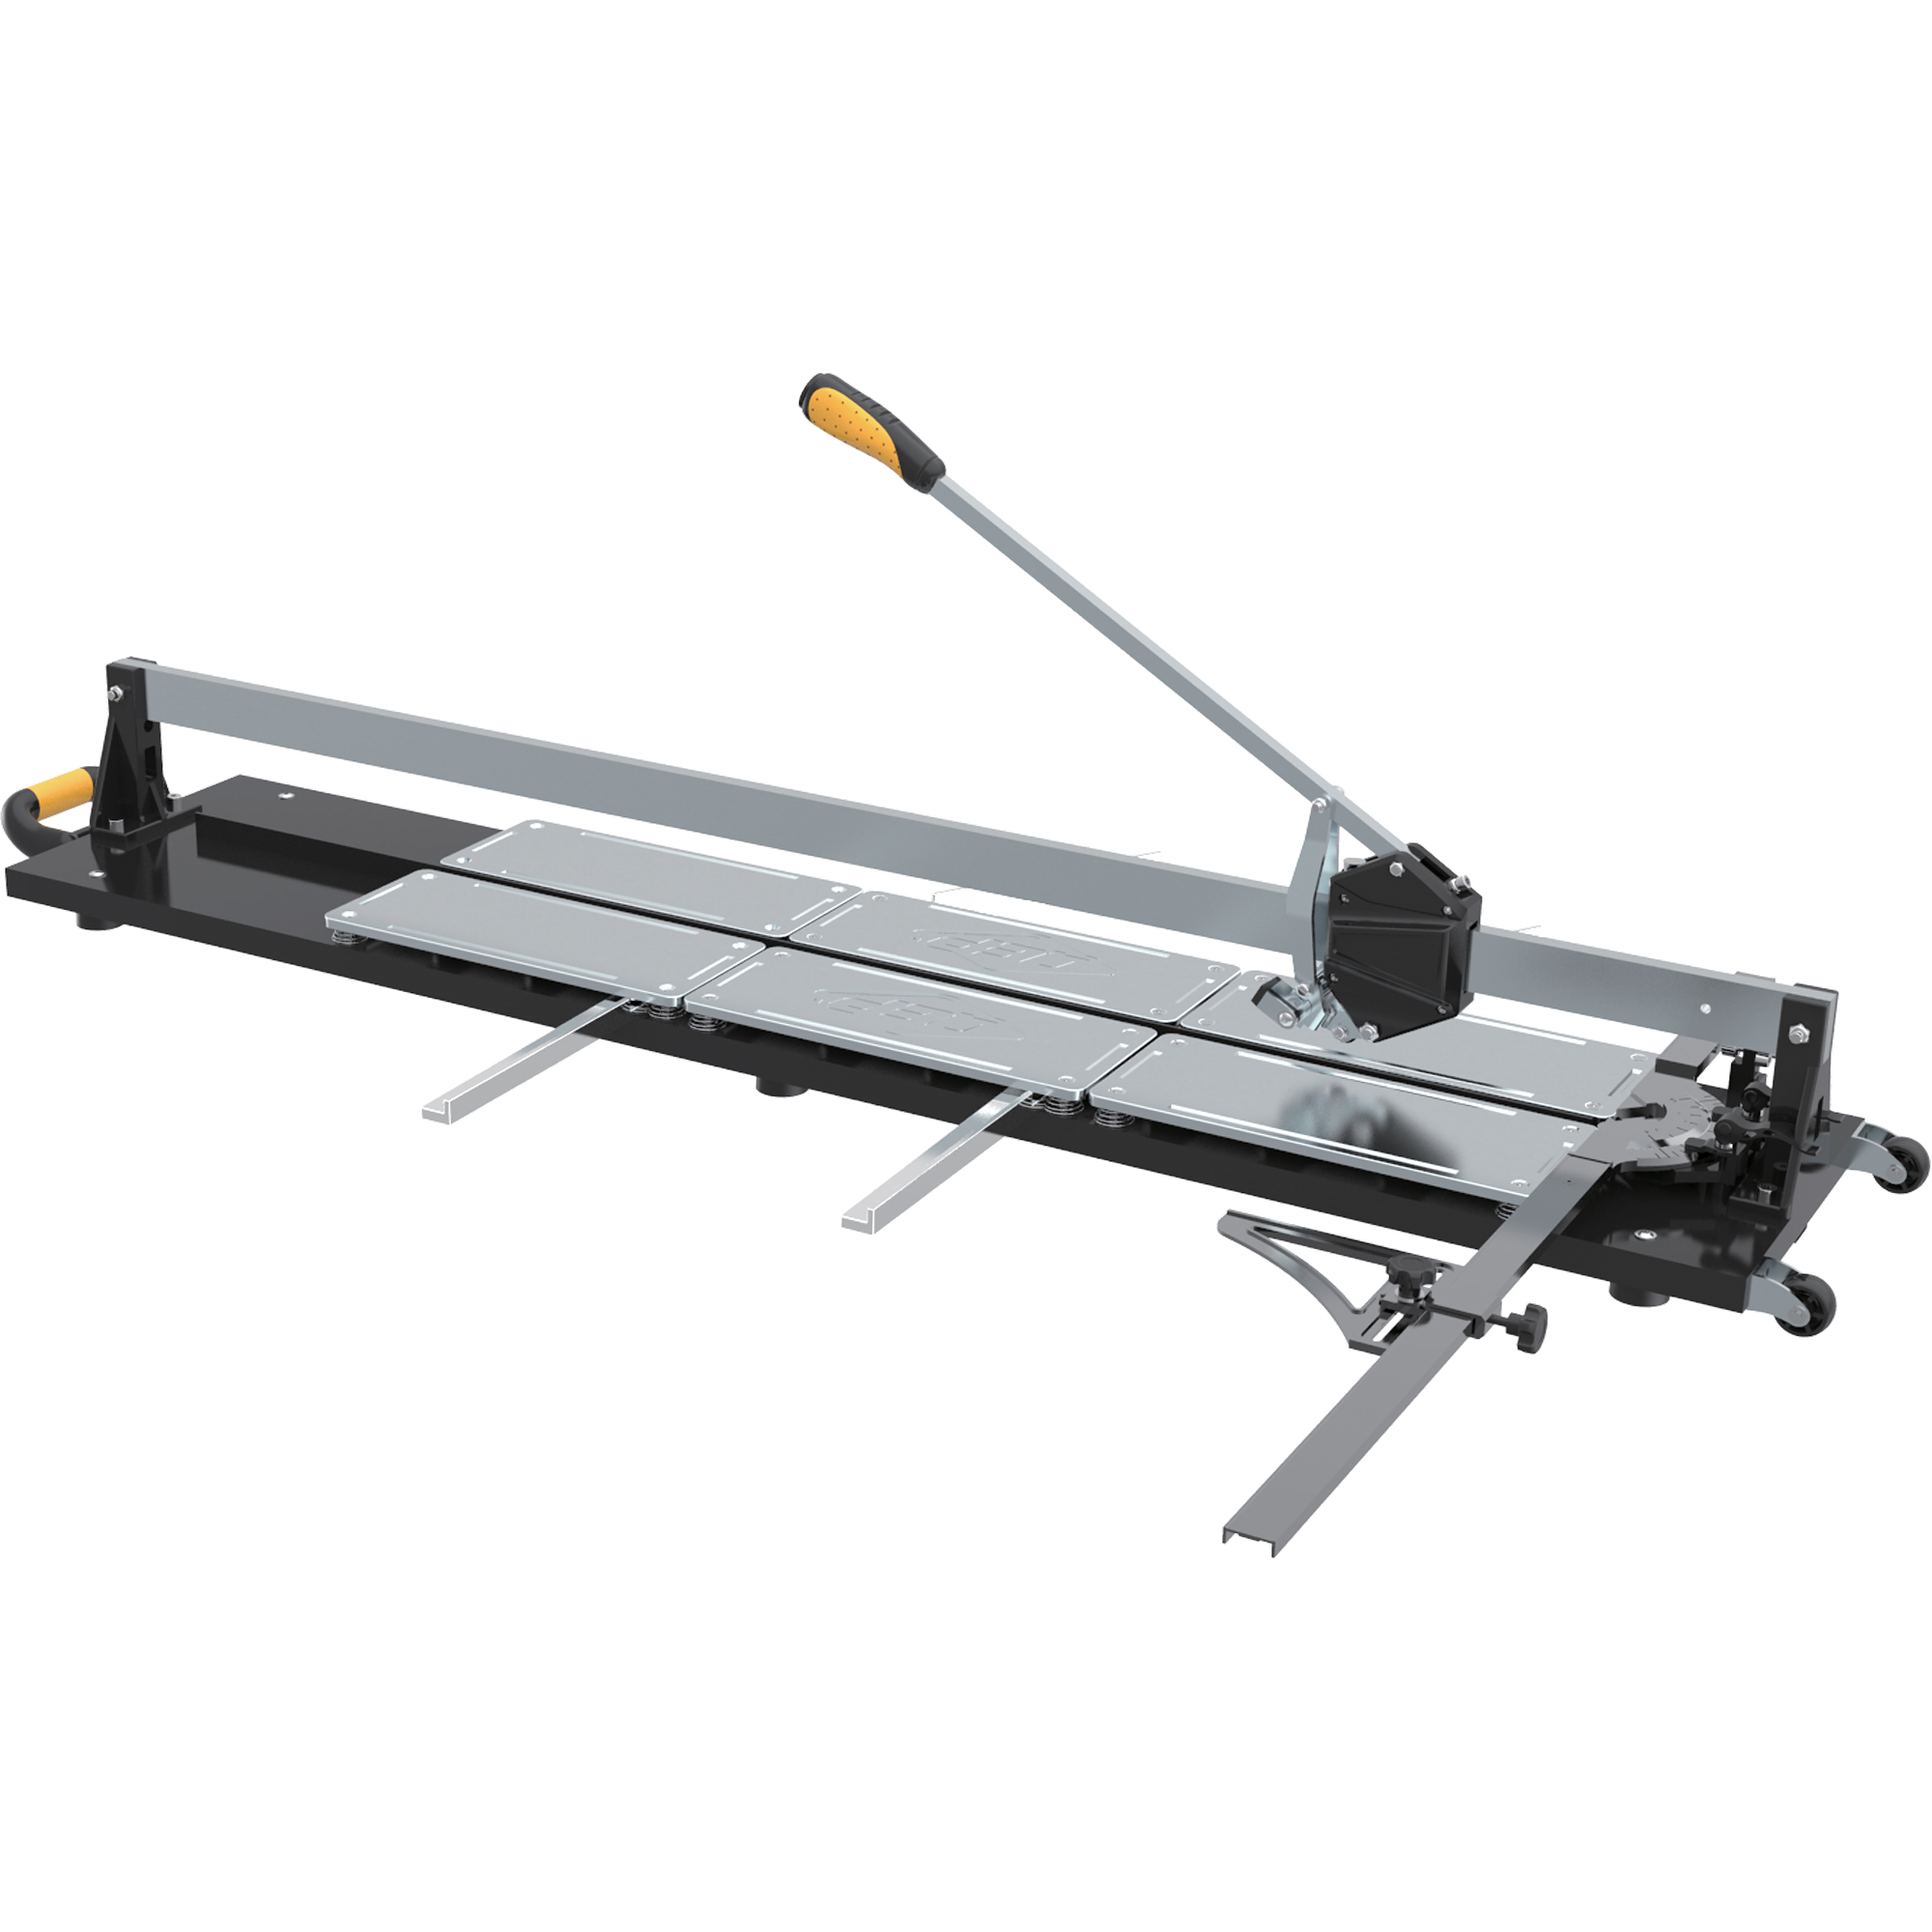 LFT Manual Tile Cutter